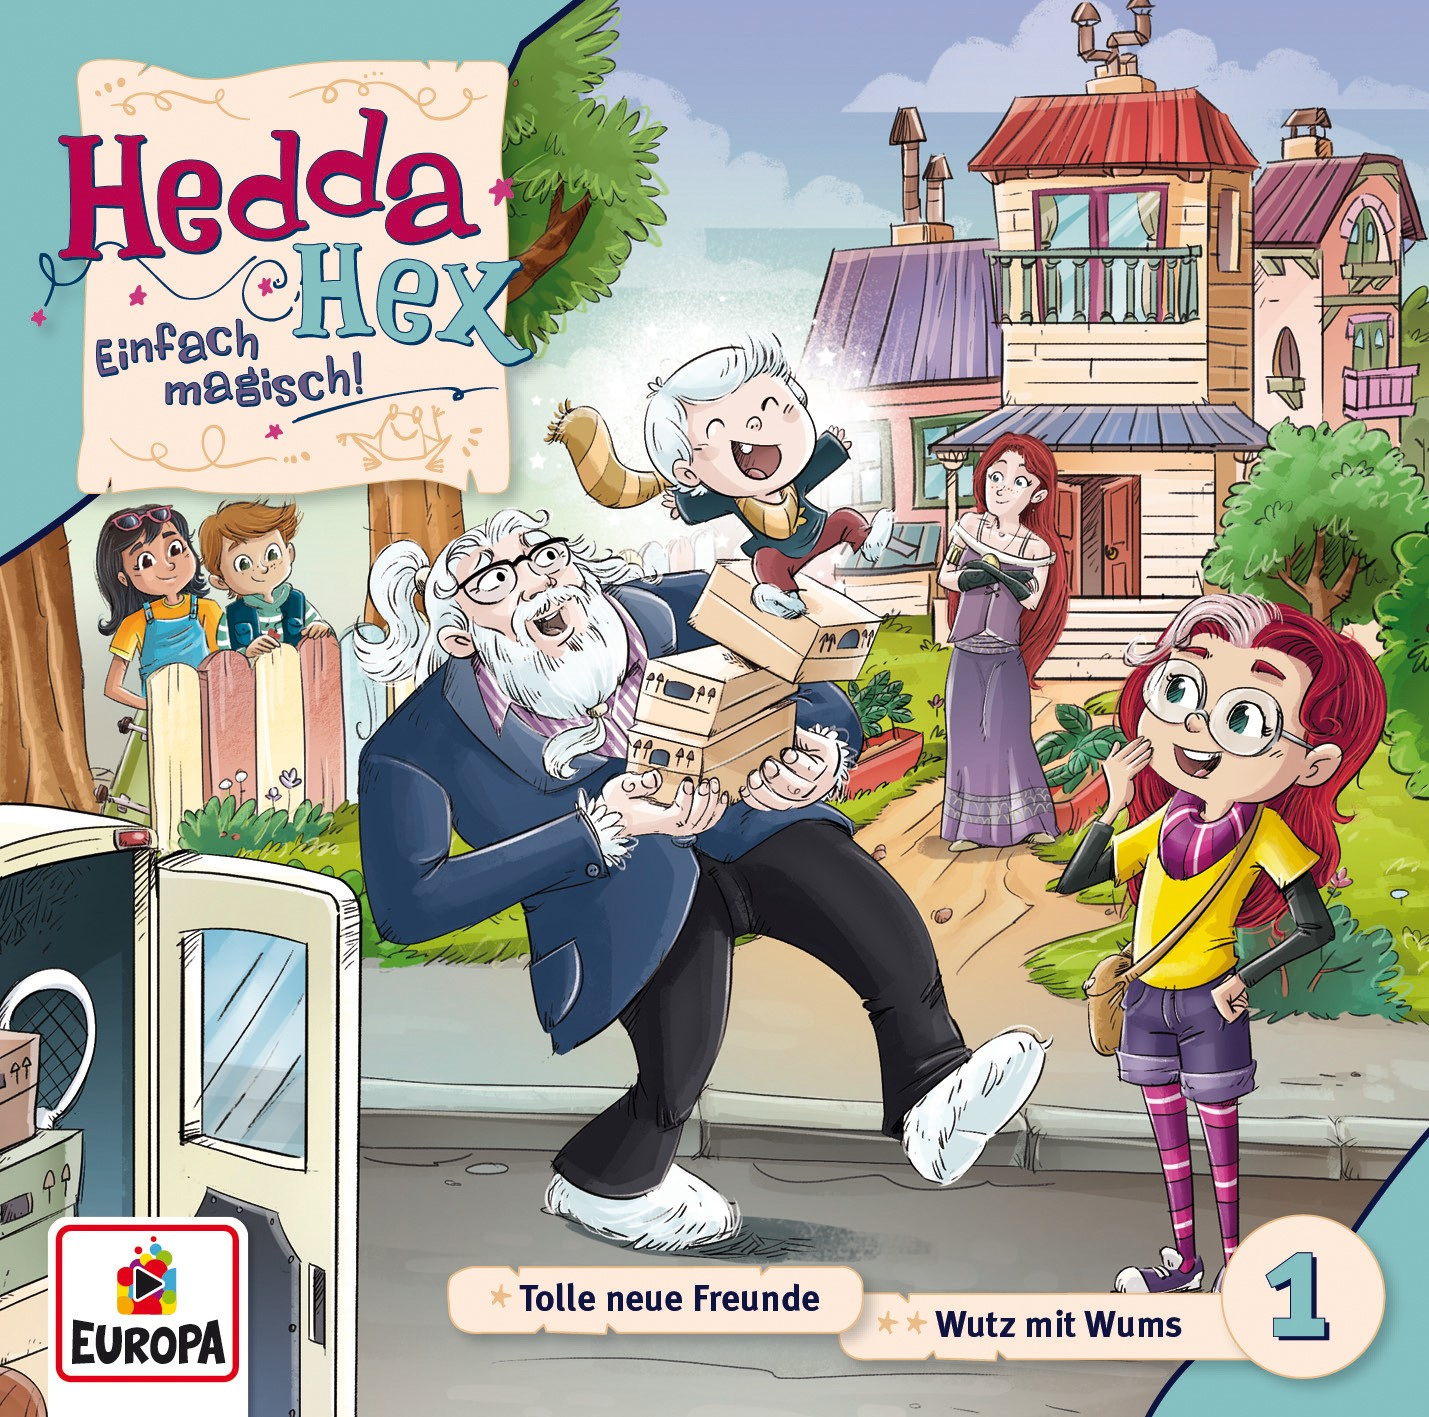 HeddaHex_Audio_cover_01